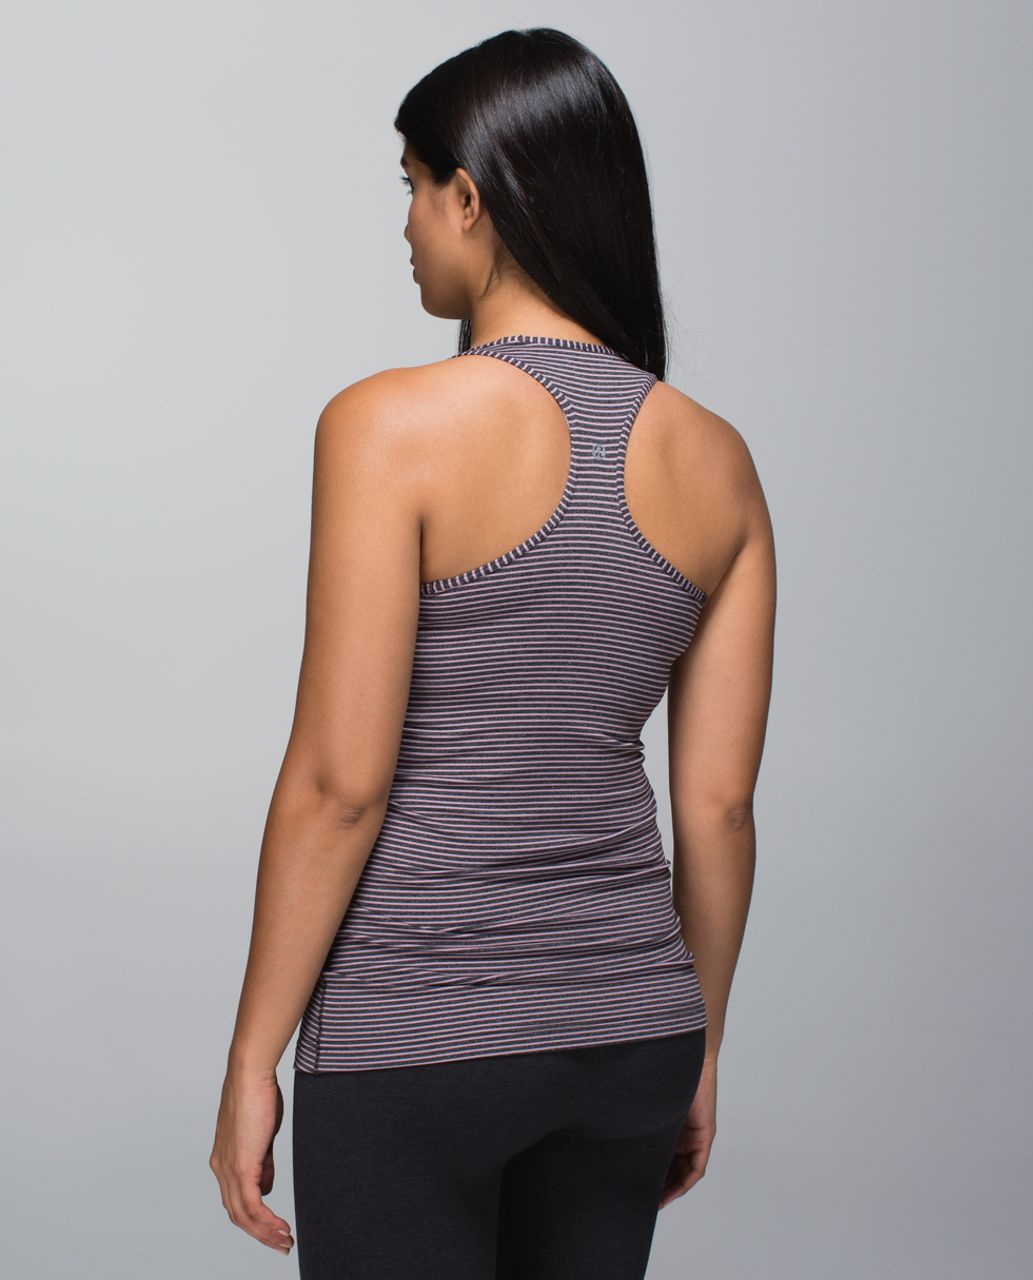 Lululemon Cool Racerback - Hyper Stripe Mauvelous Heathered Black